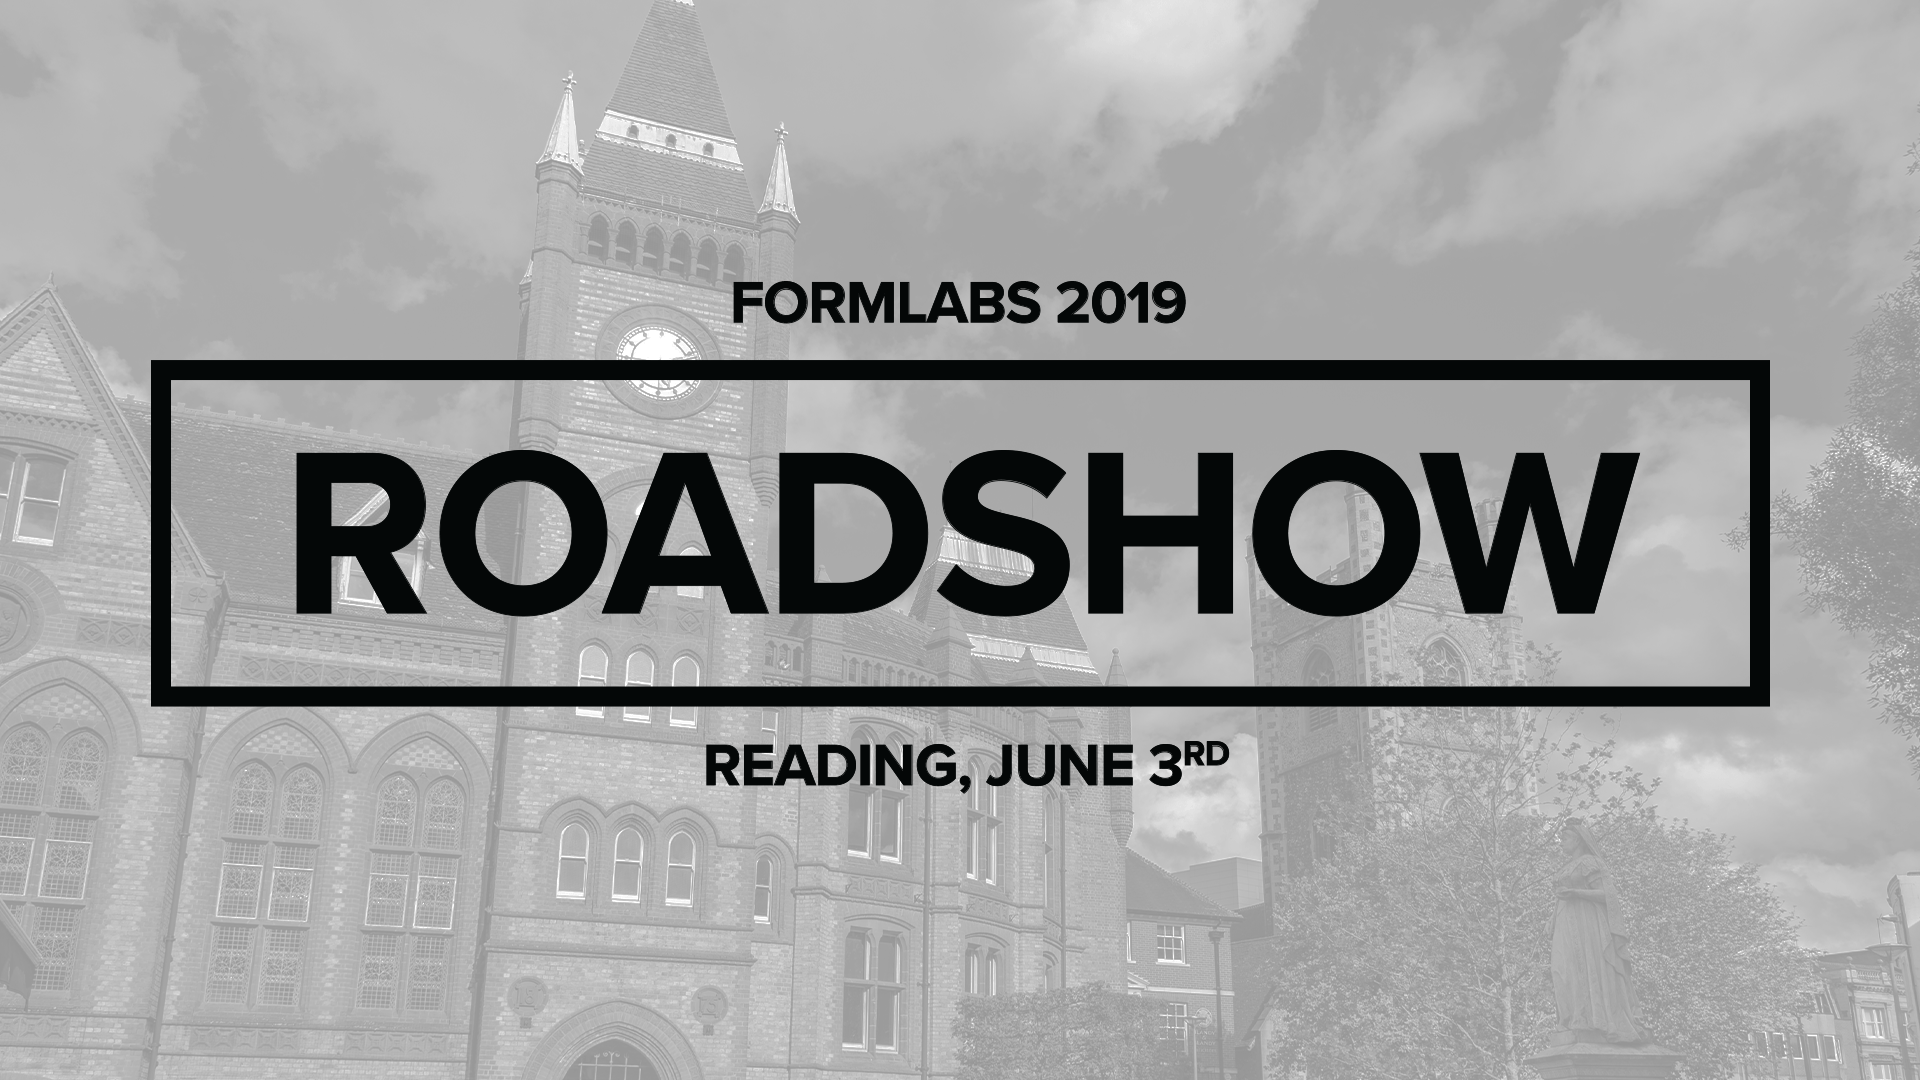 Formlabs Roadshow at CREAT3D image